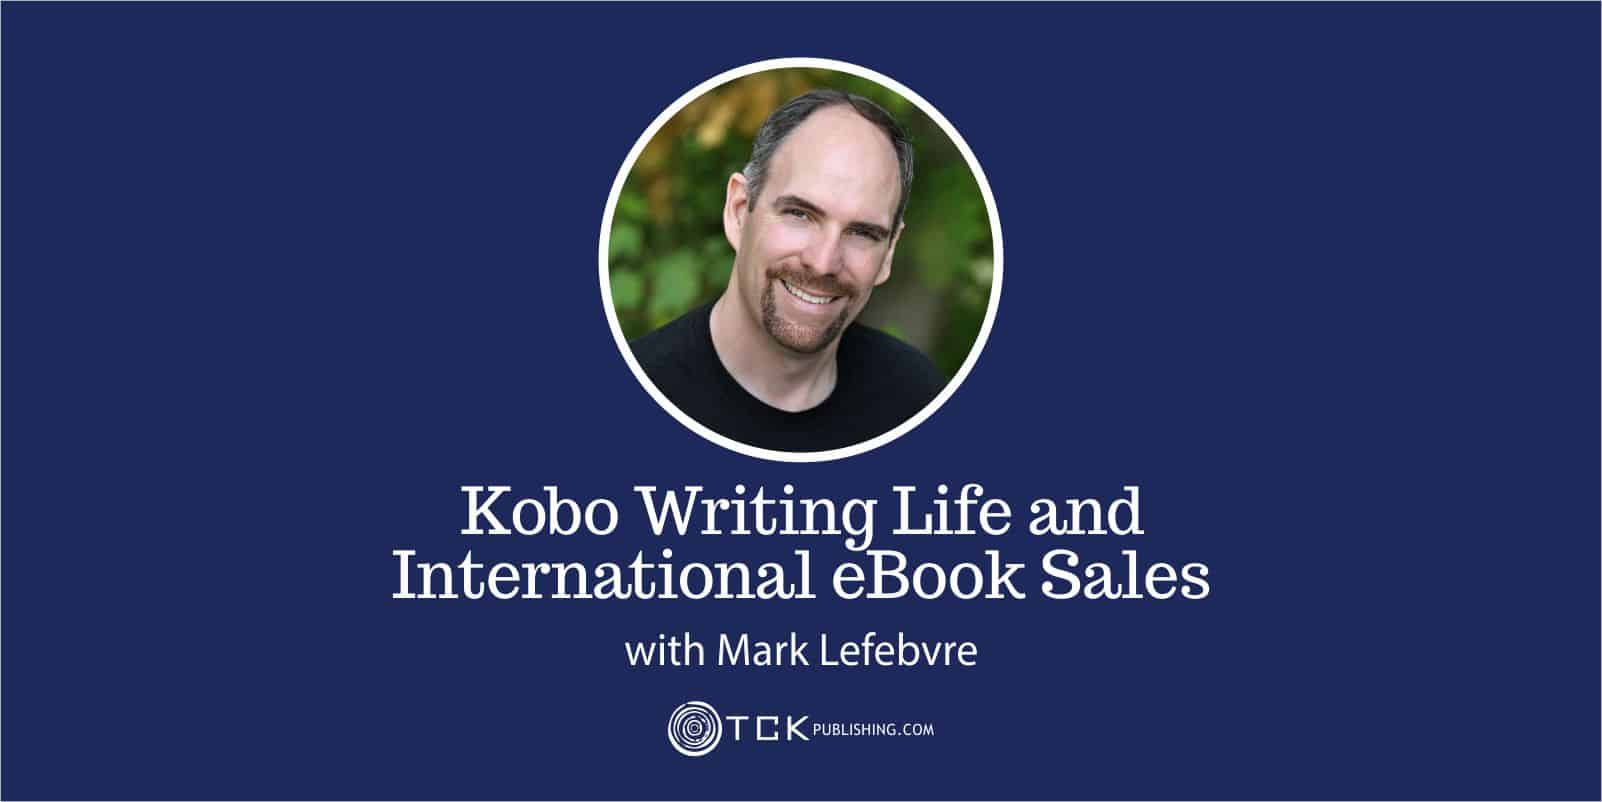 Kobo writing life and international ebook sales with Mark Lefebvre